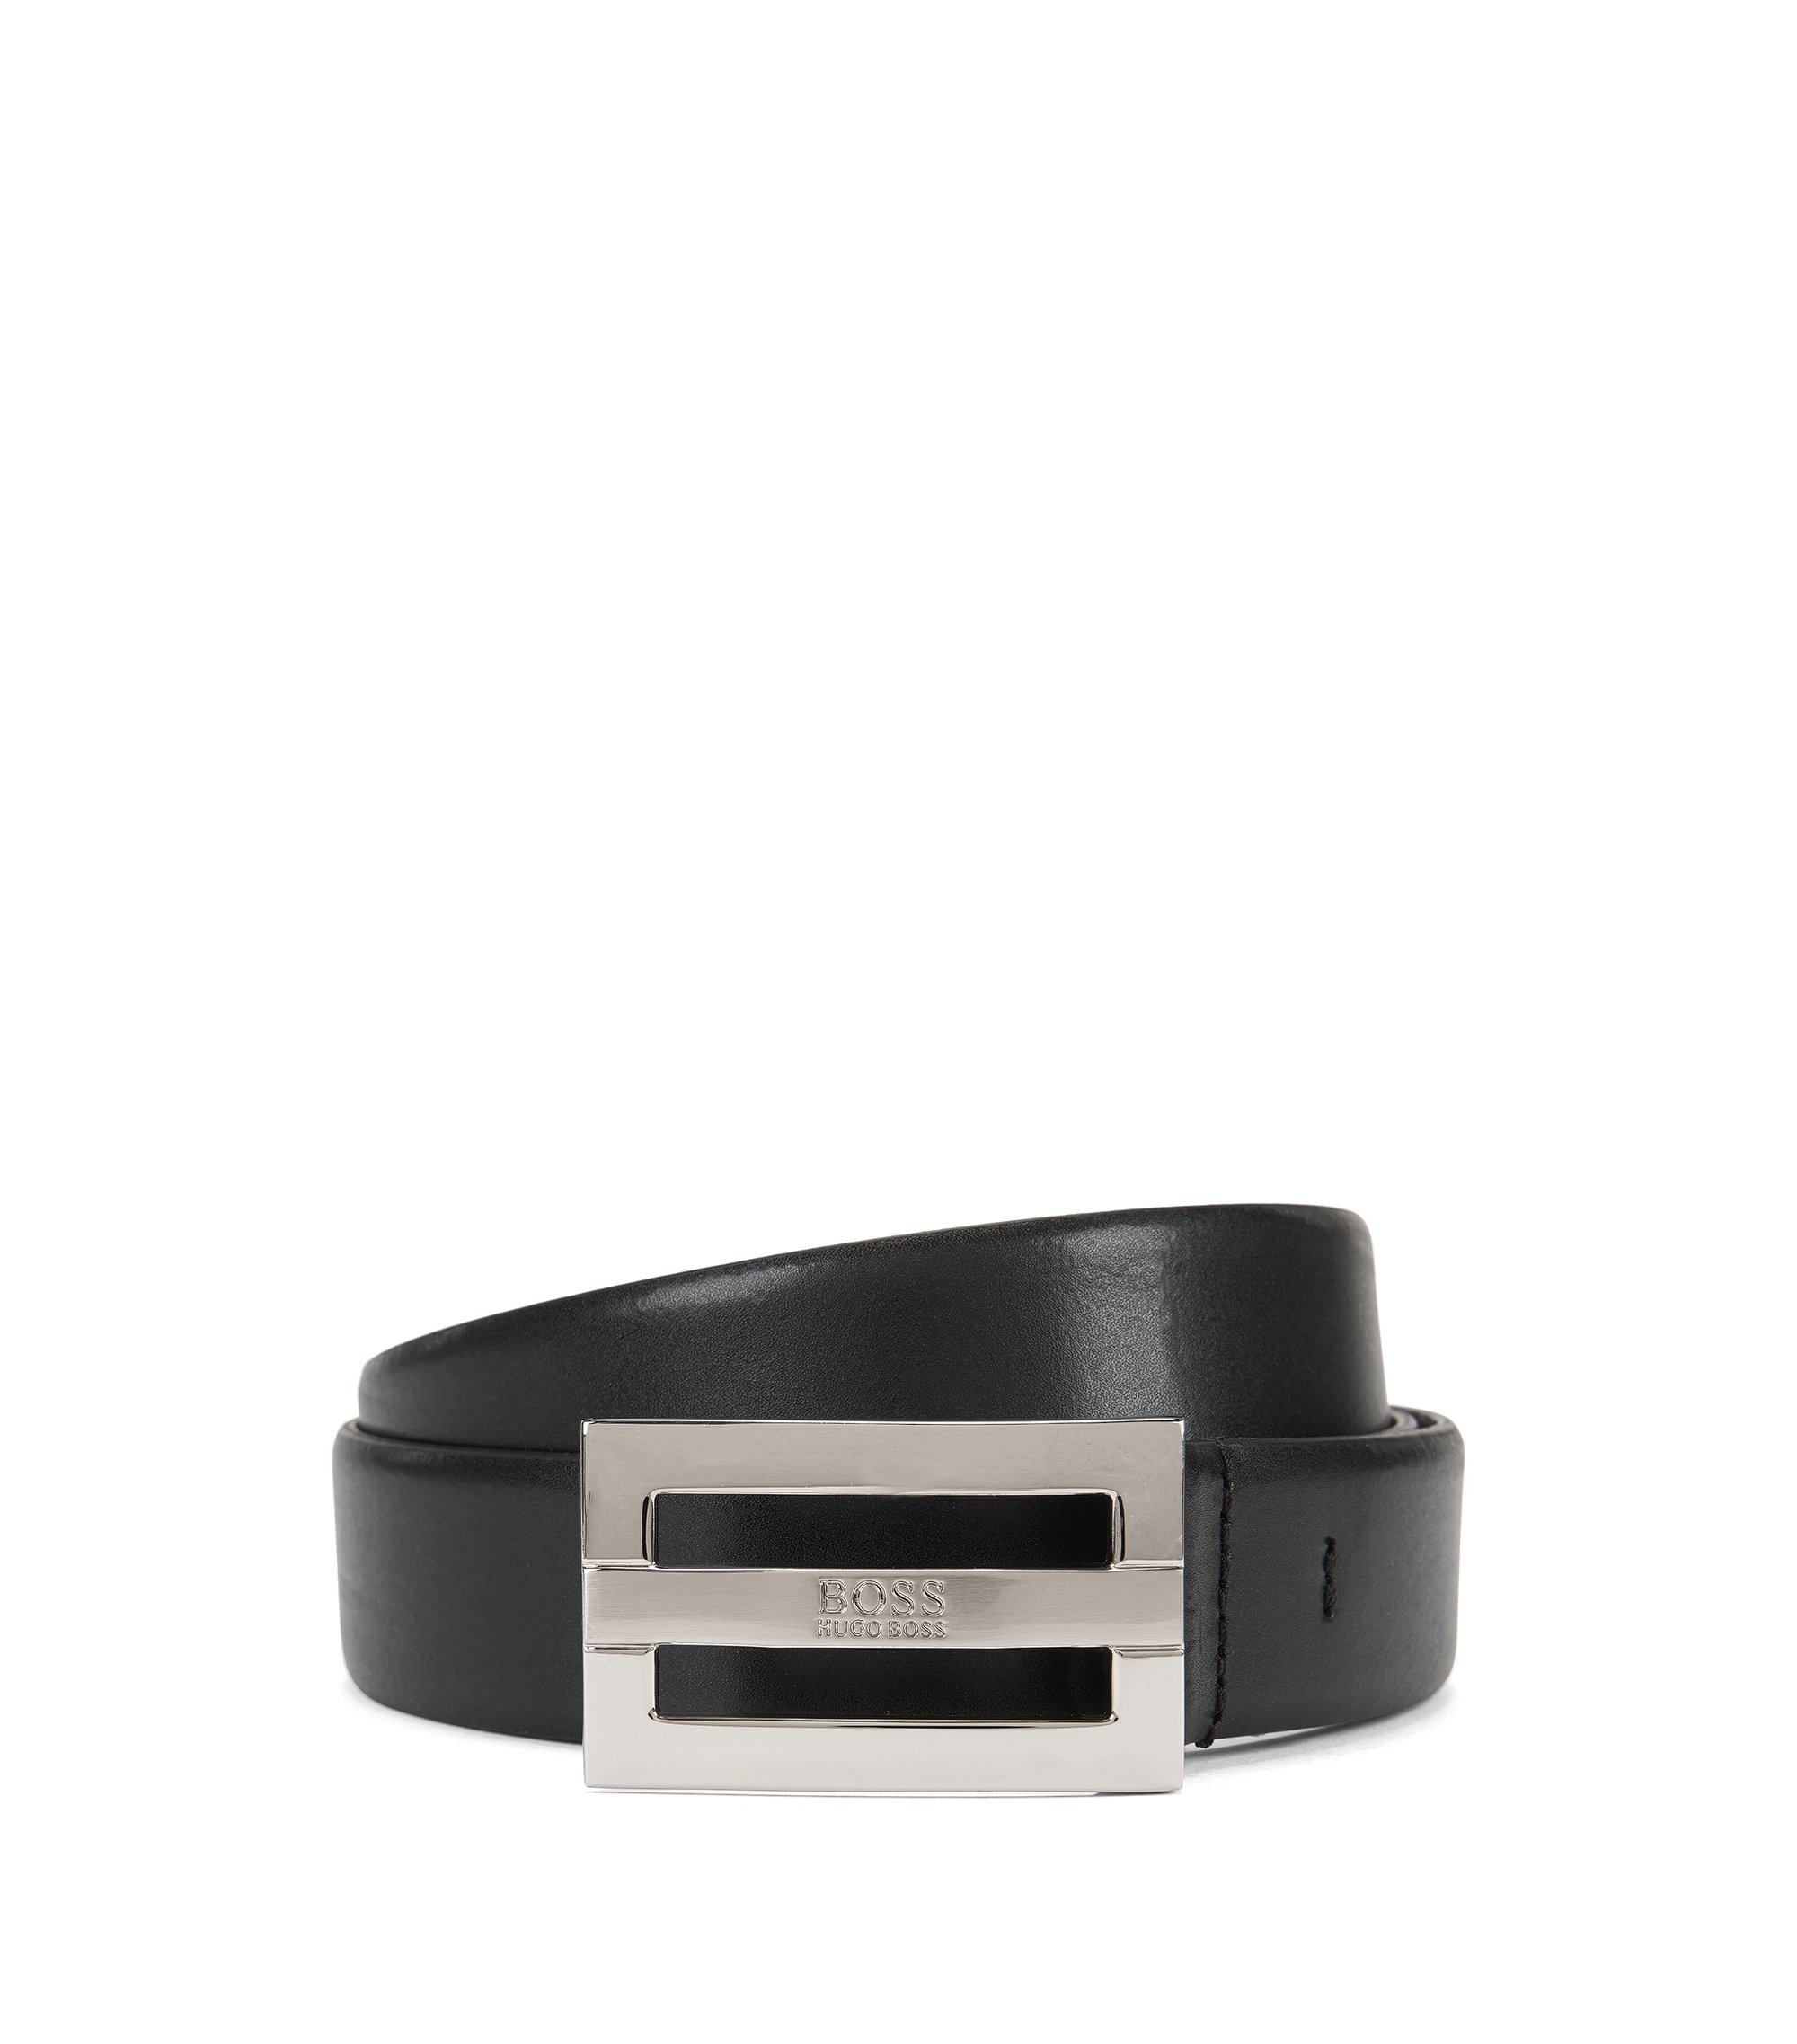 Leather belt with branded buckle, Black